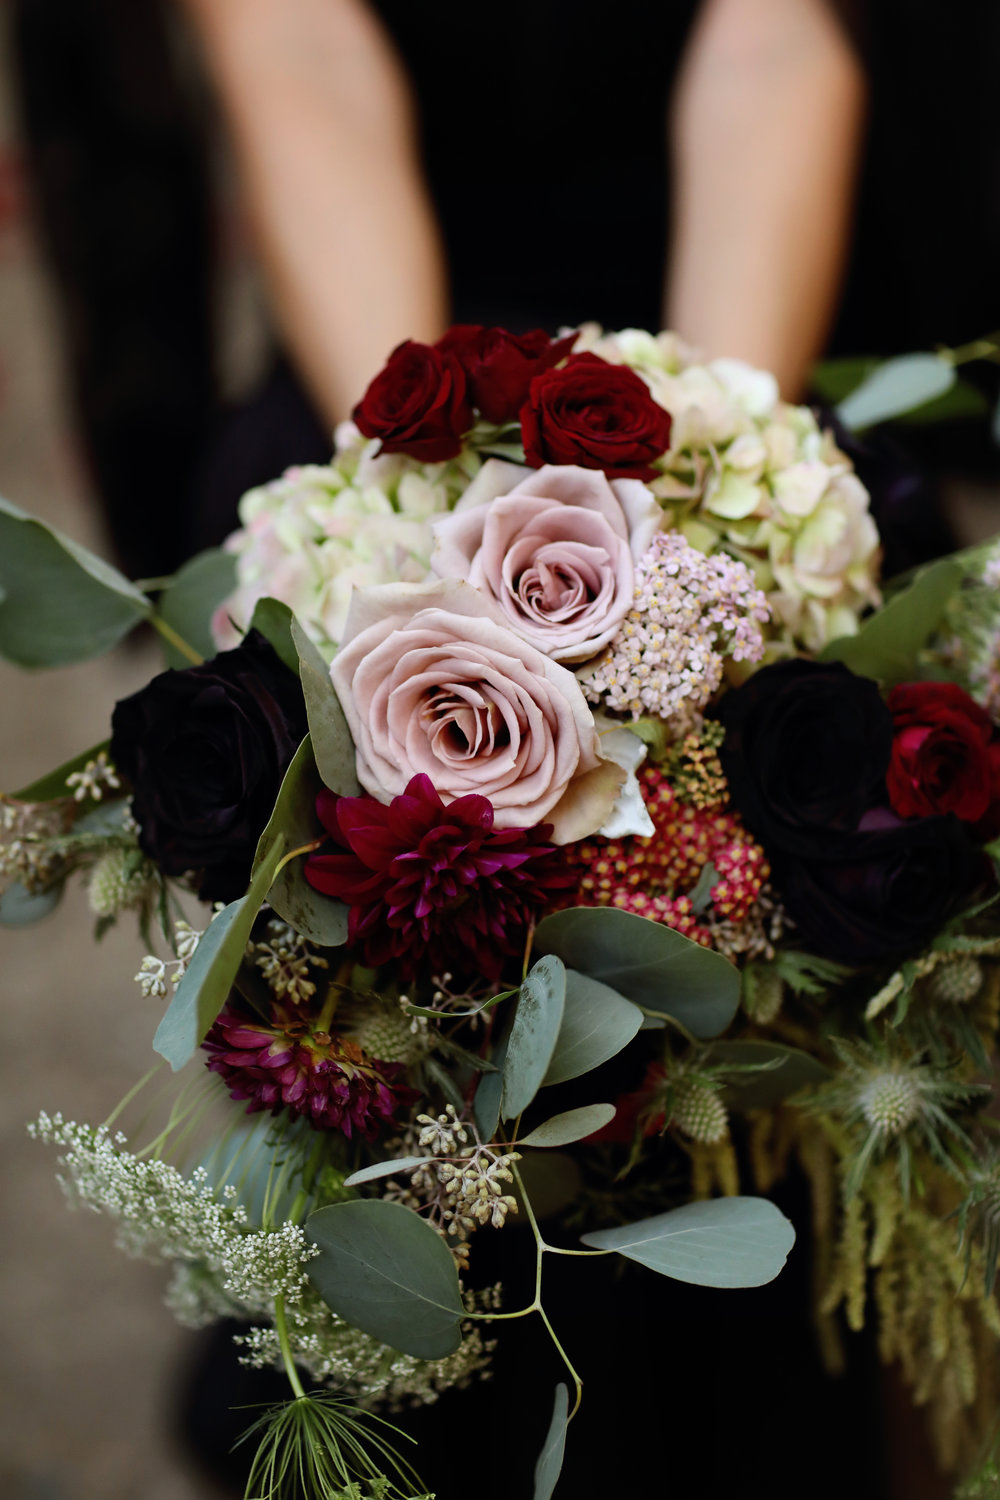 Brides bouquet Sith black dahlias, thistle, roses, and seeded eucalyptus